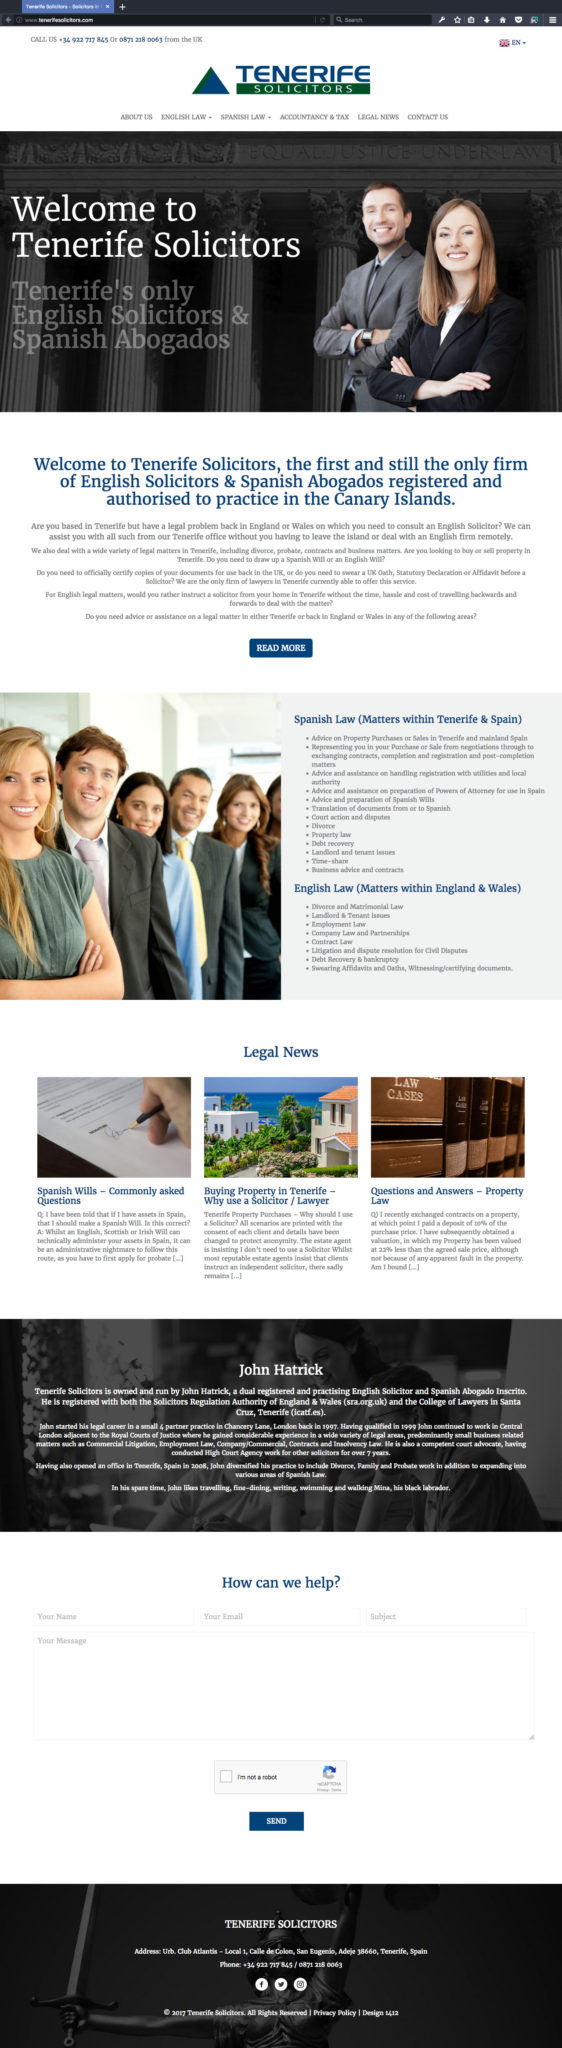 Tenerife Solicitors